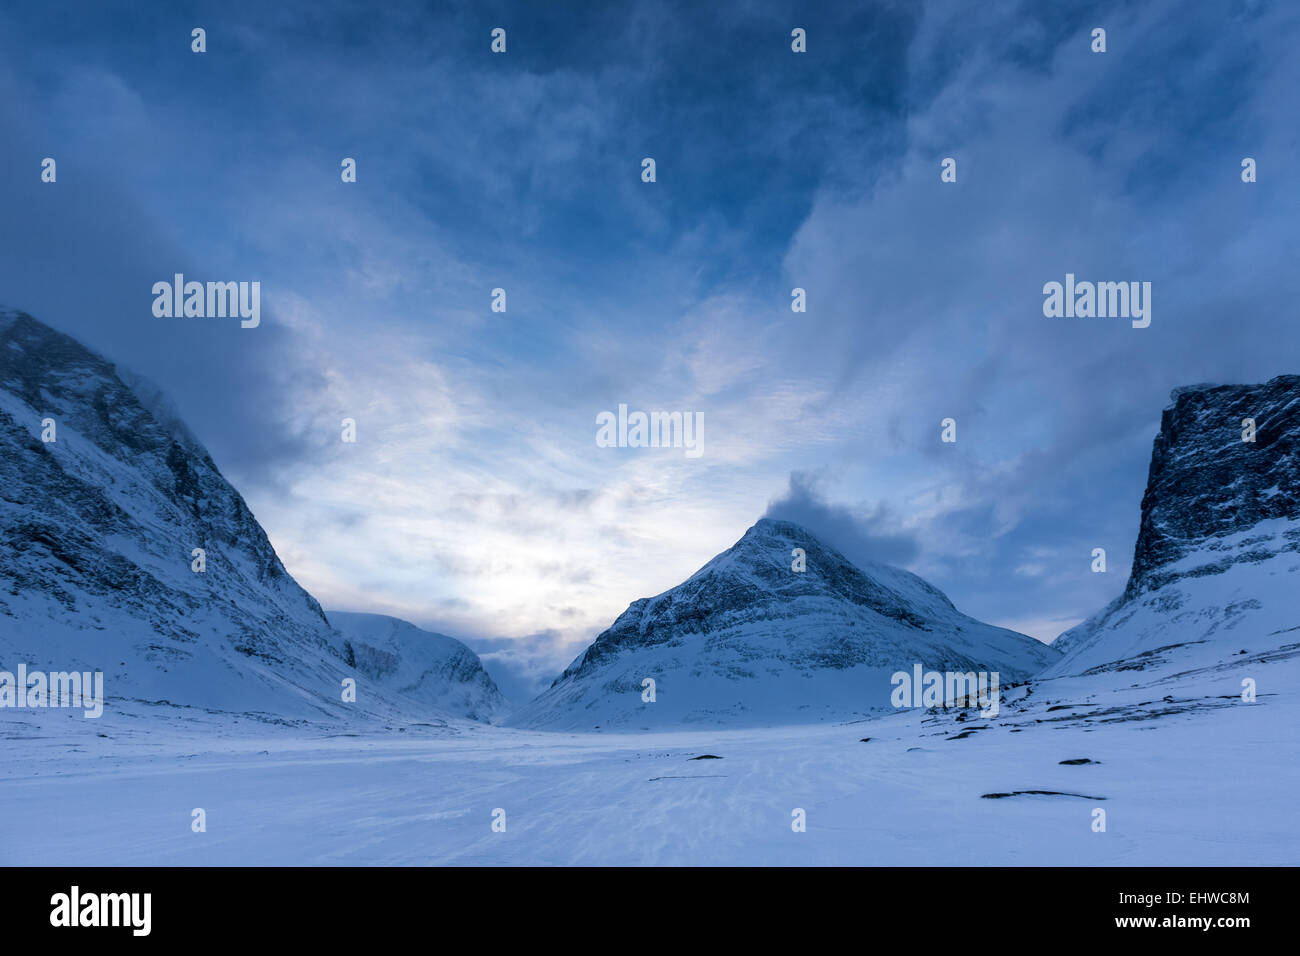 Evening at Kebnekaise mountain area, Kiruna, Sweden, Europe, EU - Stock Image